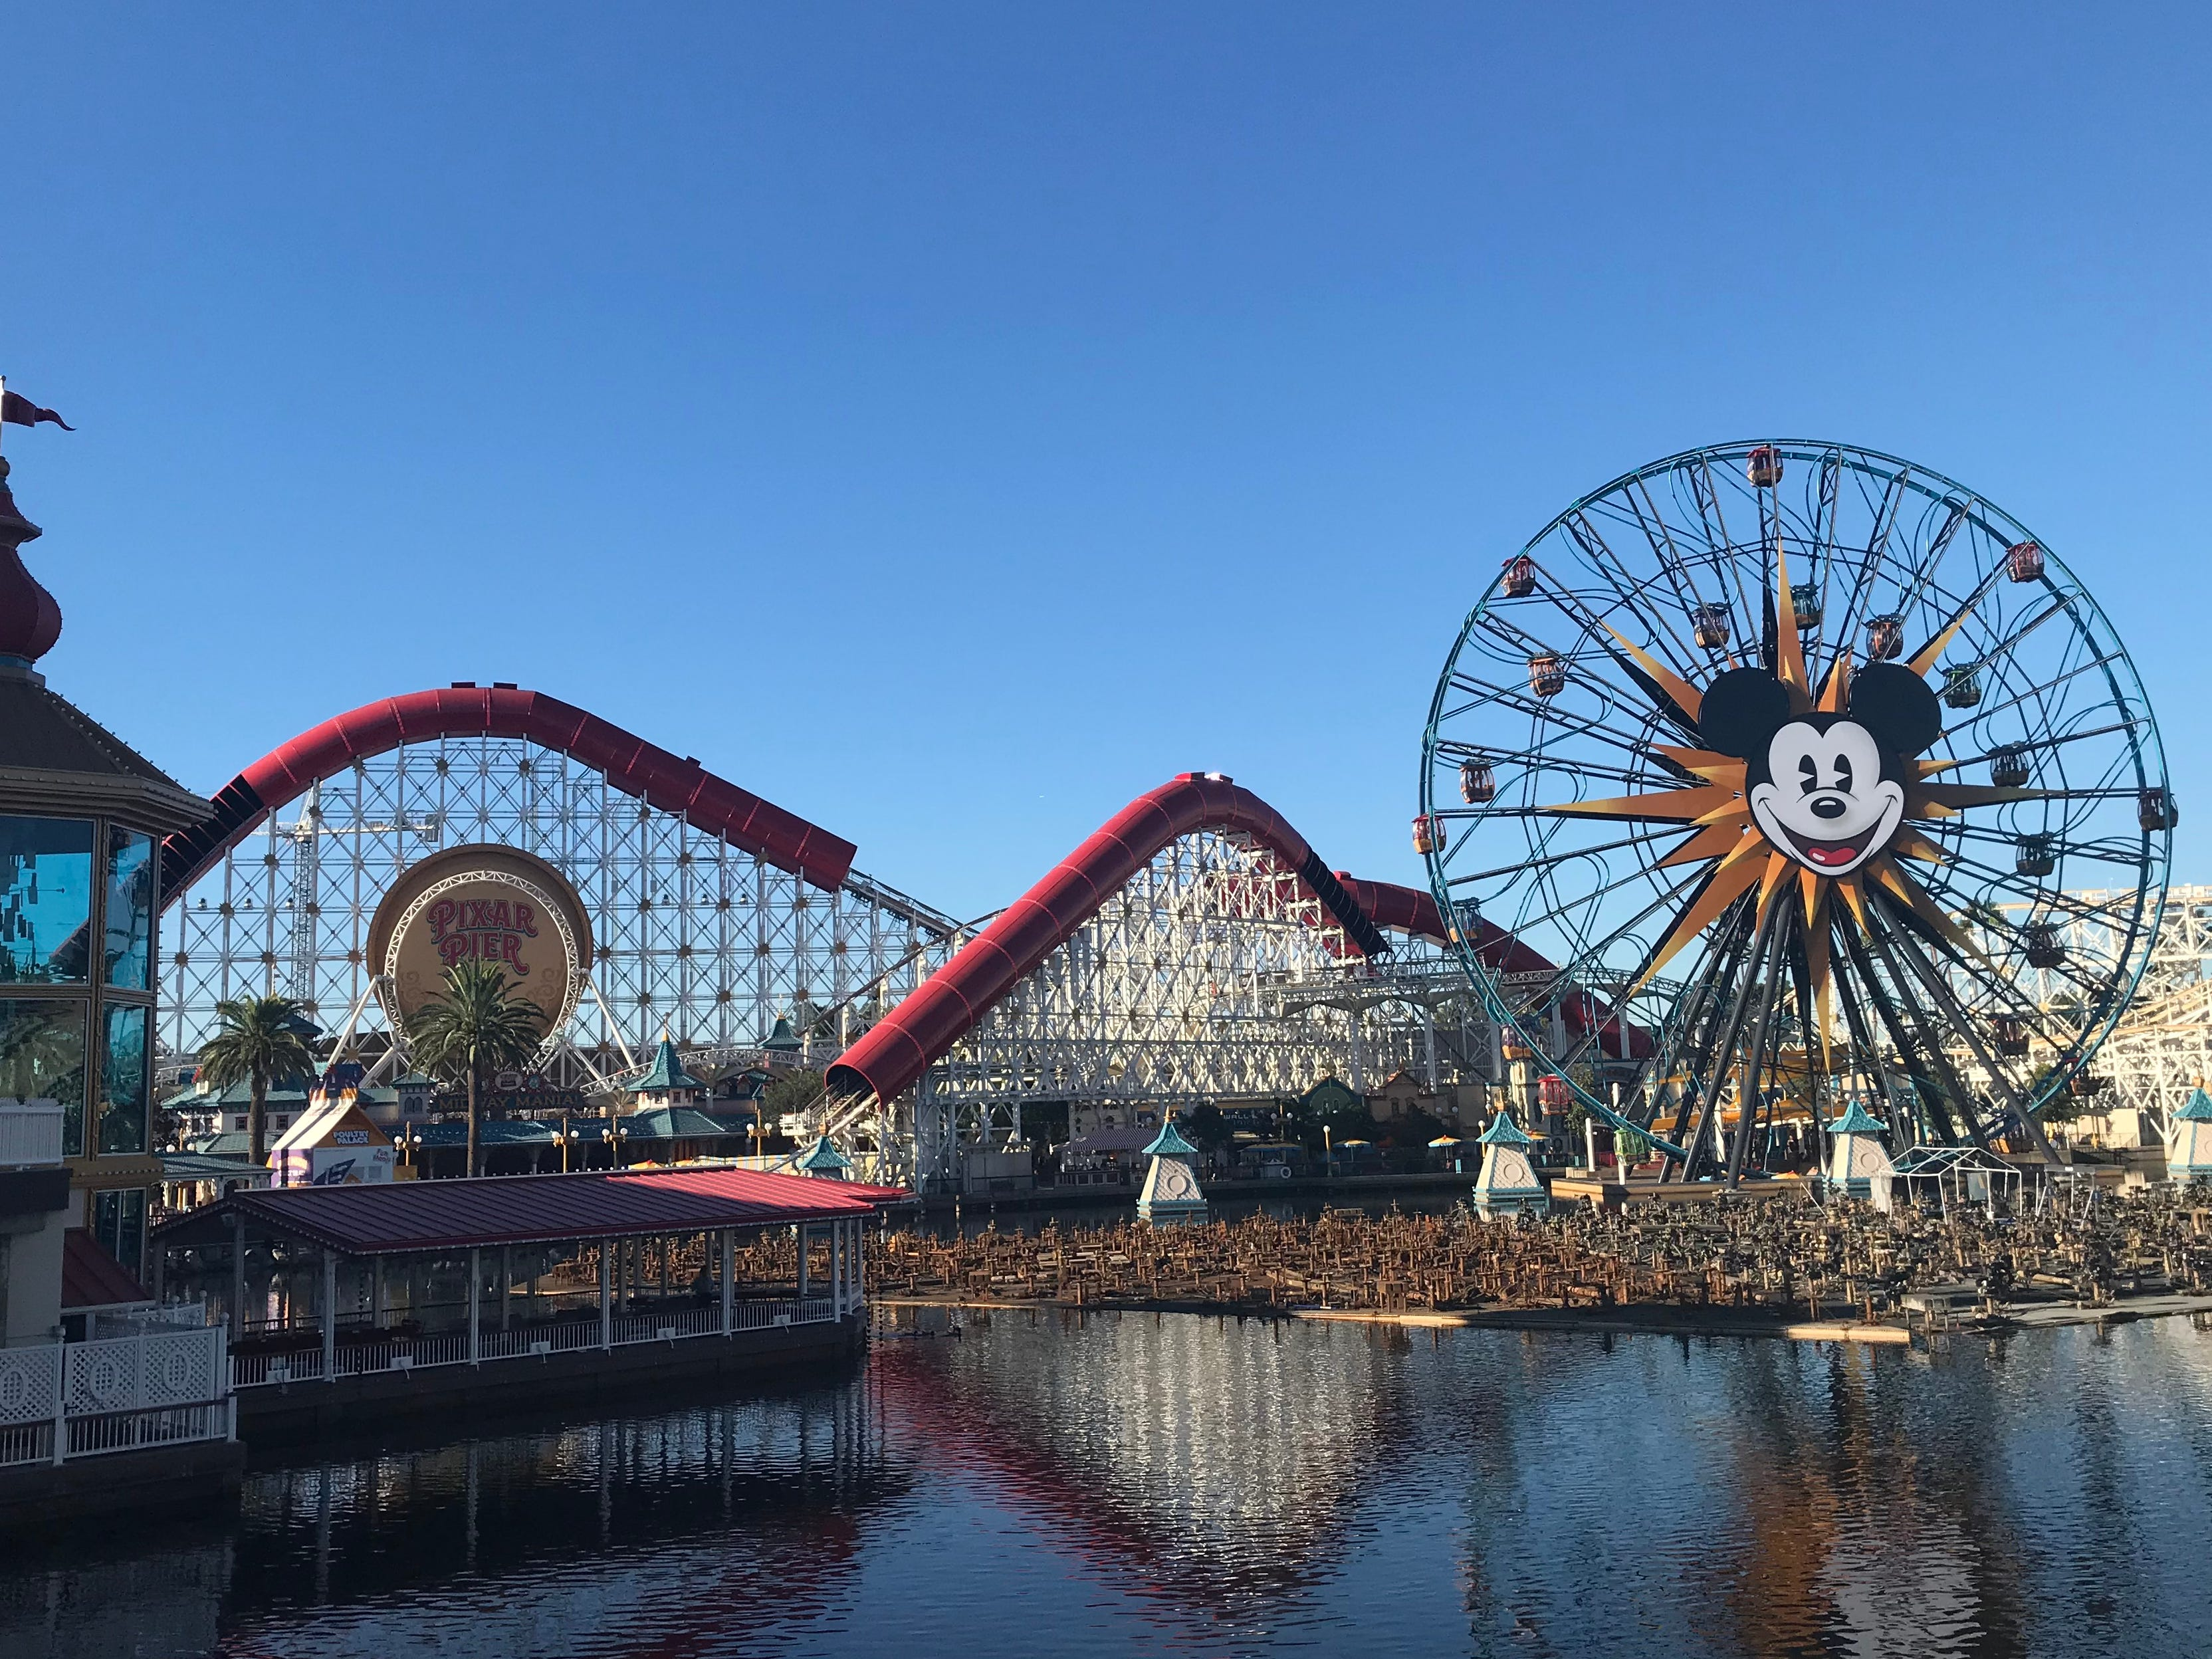 Slide 11 of 23: The Incredicoaster, which can be found at Pixar Pier inside Disney California Adventure Park, is the fastest attraction at the resort at 55 mph.It's also the longest thrill ride on the pier with over a mile of track to cover.